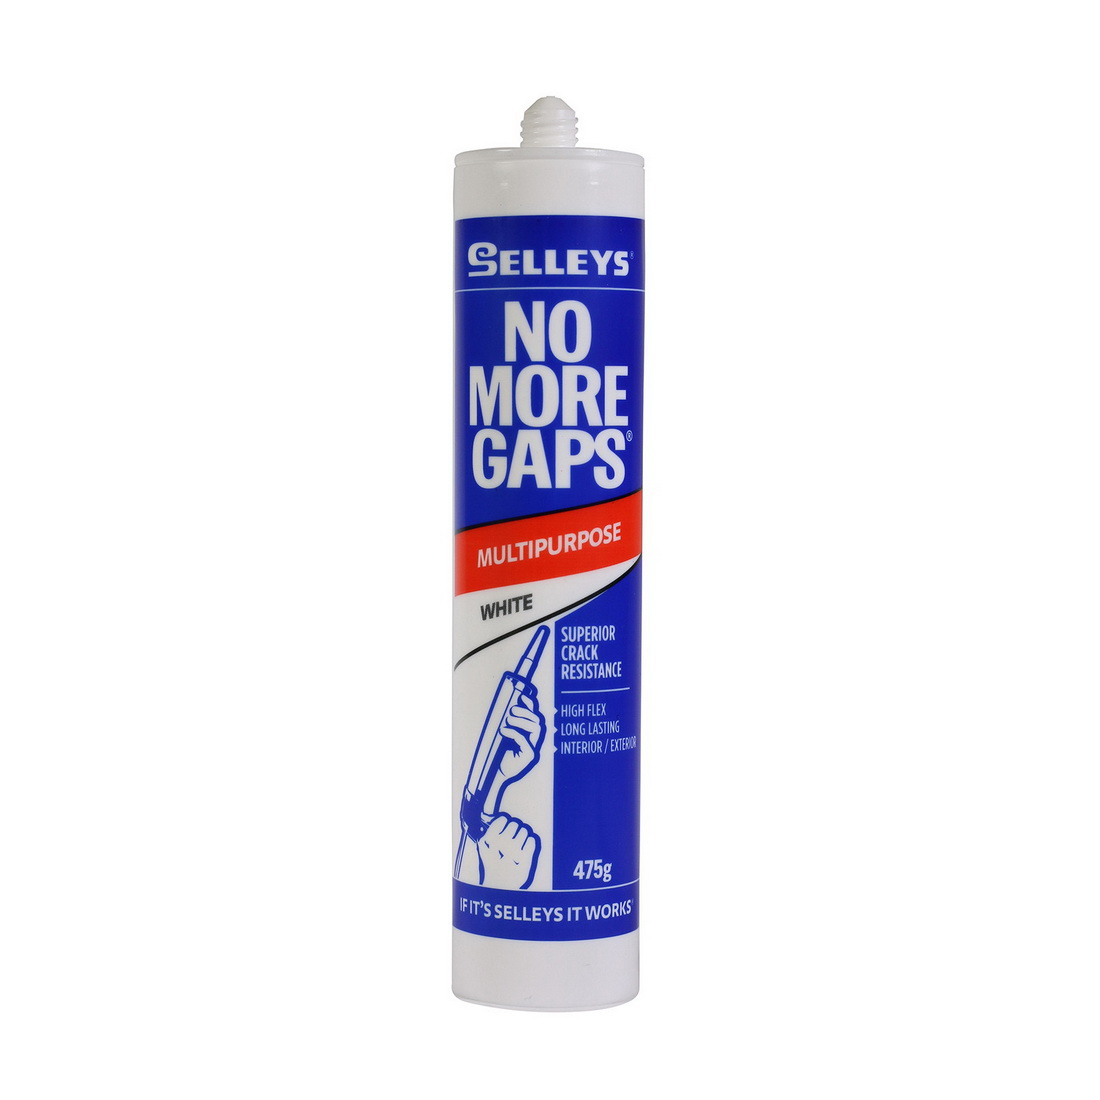 No More Gaps 475g Multi-purpose Gap Filler White